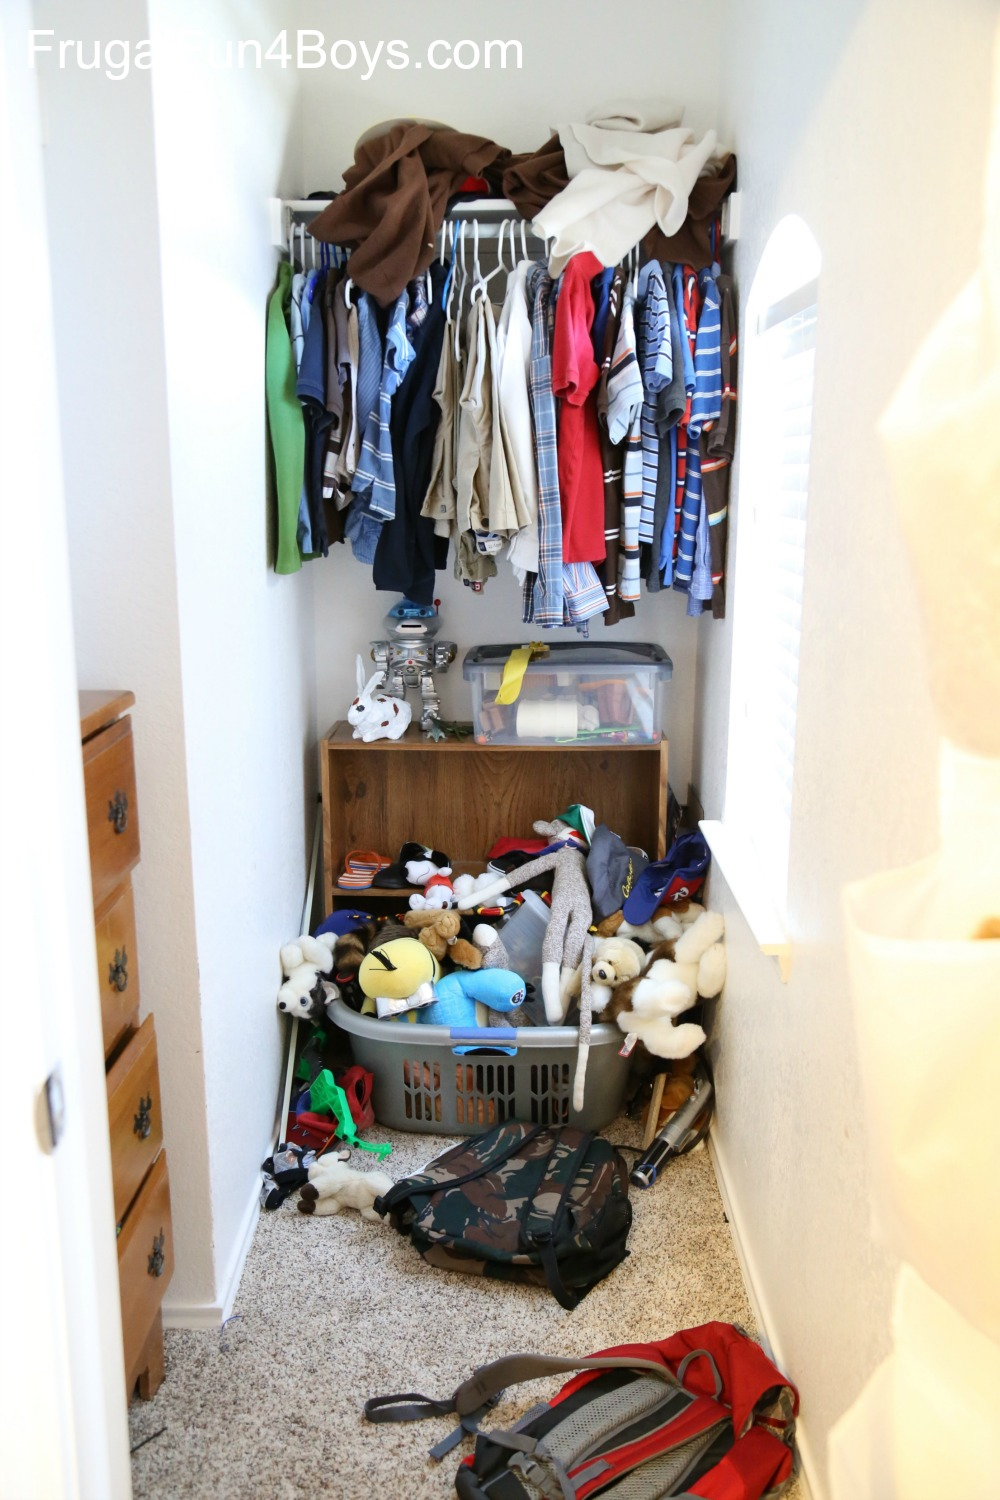 How to Get Kids to Clean Their Own Rooms  Frugal Fun For Boys and Girls